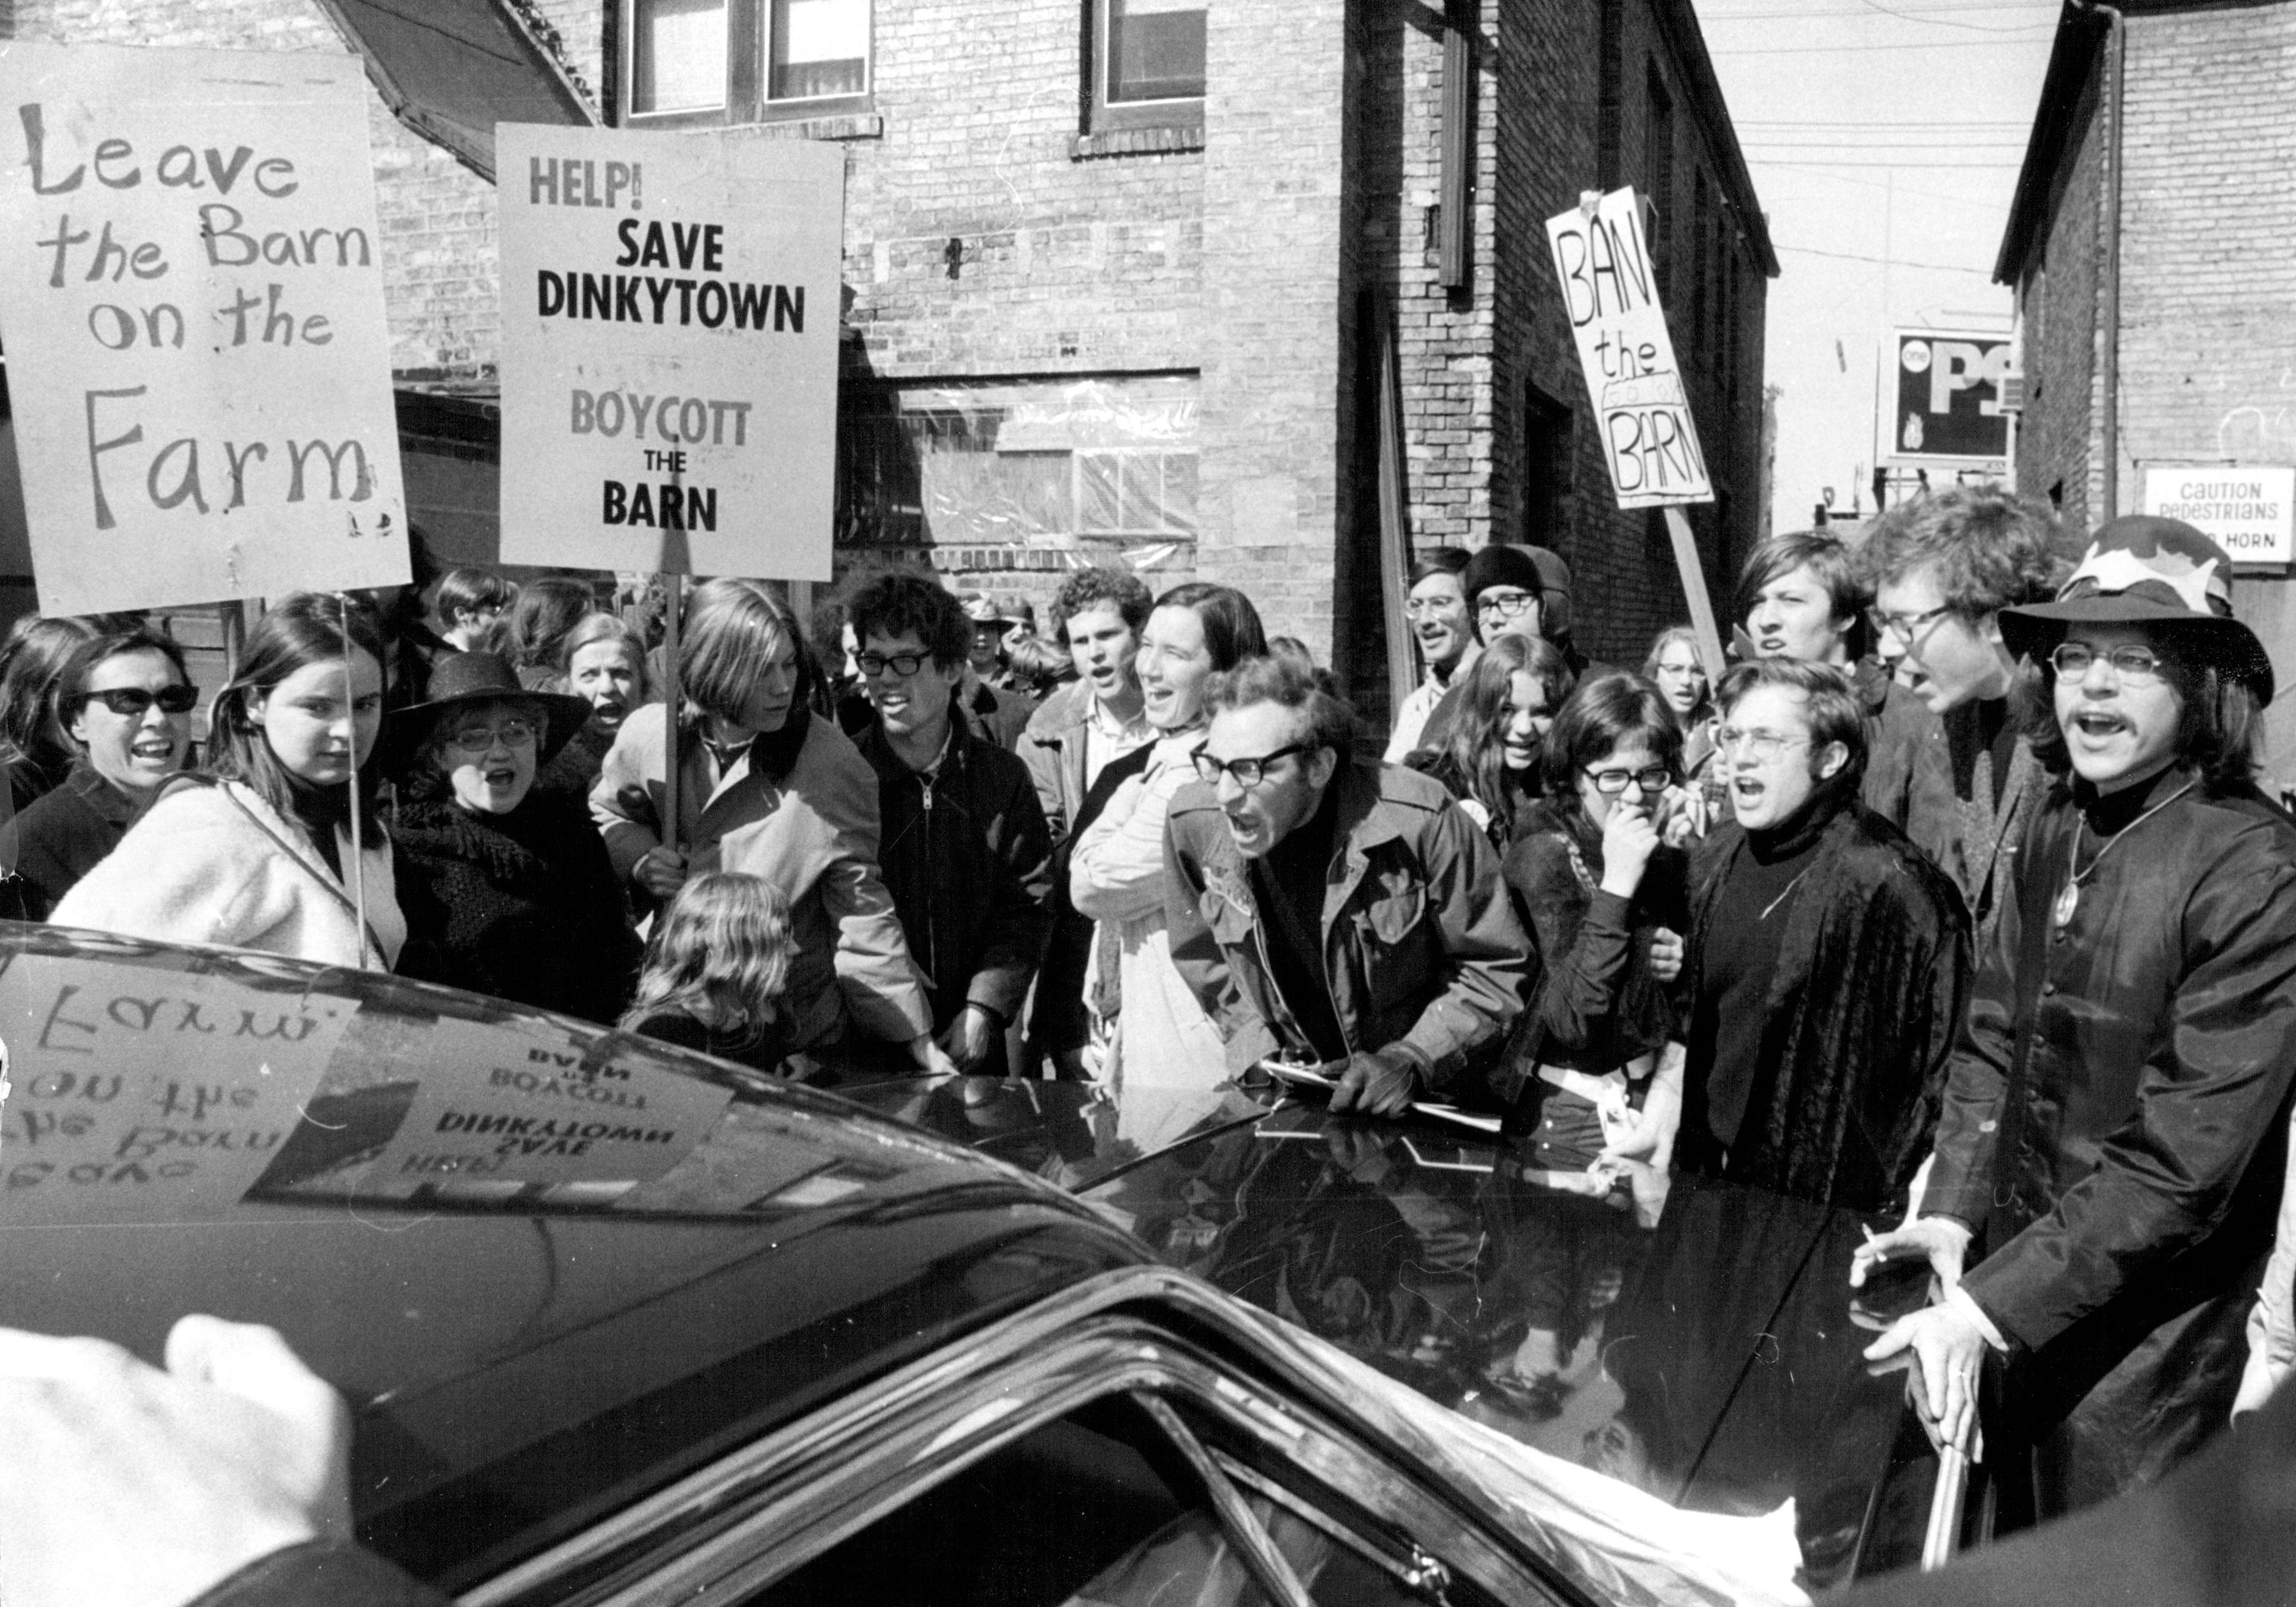 Protestors confront a Red Barn official and the property owner of the proposed Red Barn site in March 1970.